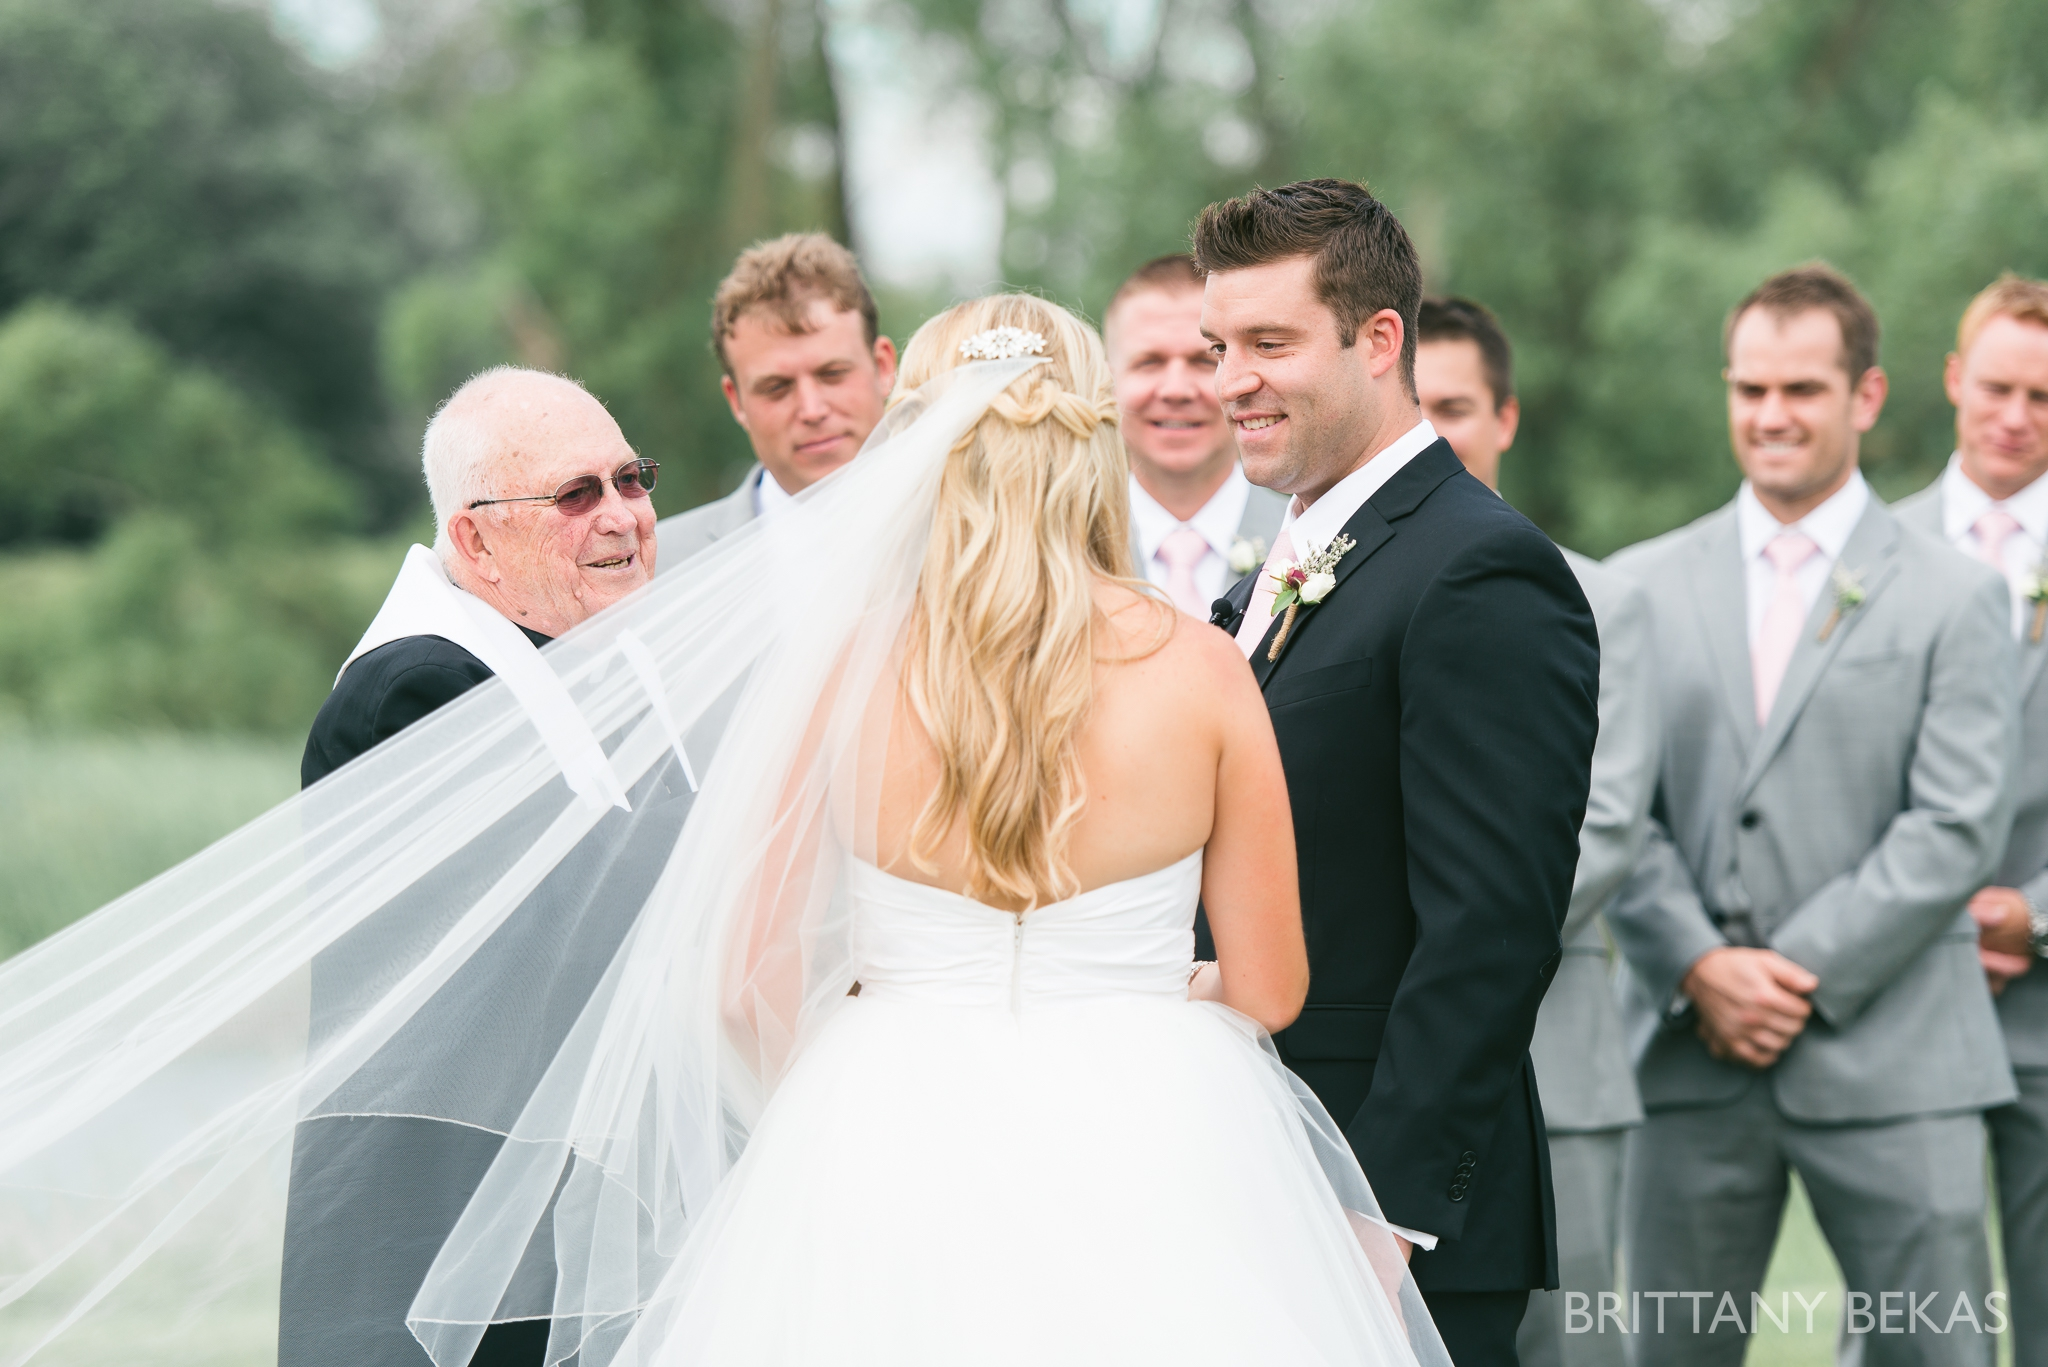 New Buffalo Wedding - Willow Harbor Vineyards Wedding Photos - Brittany Bekas Photography_0037